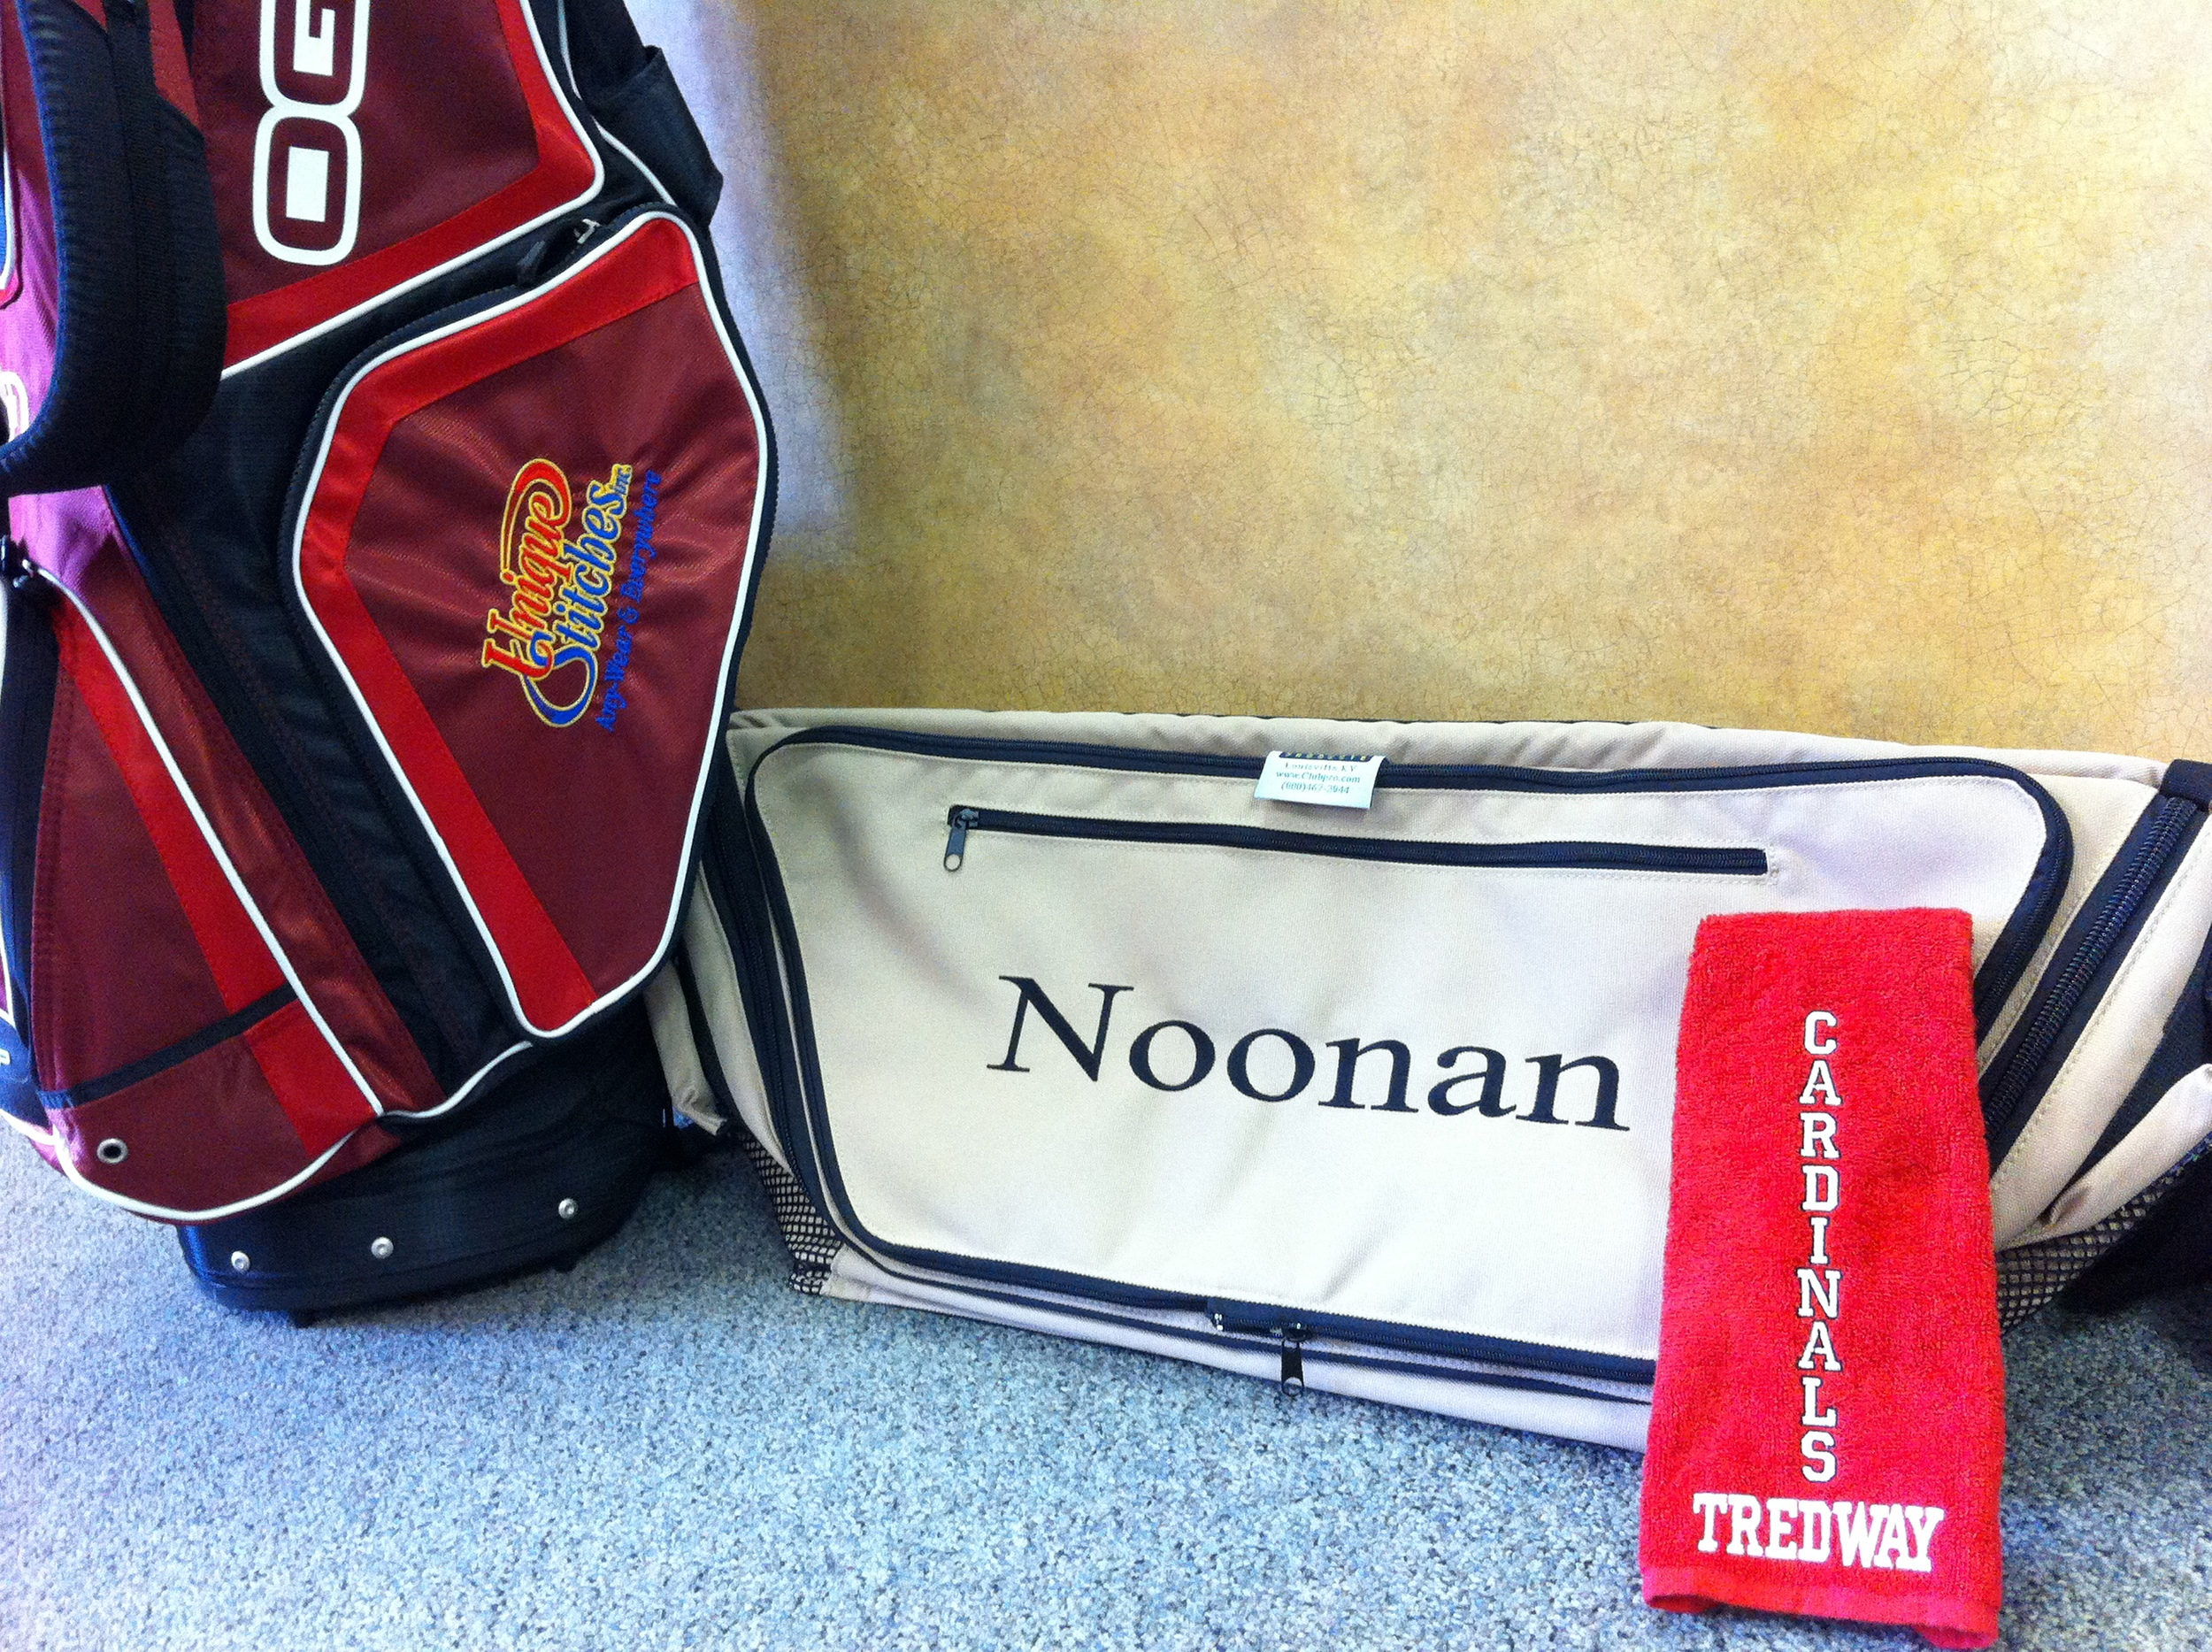 Golf bag, cart bag and towel